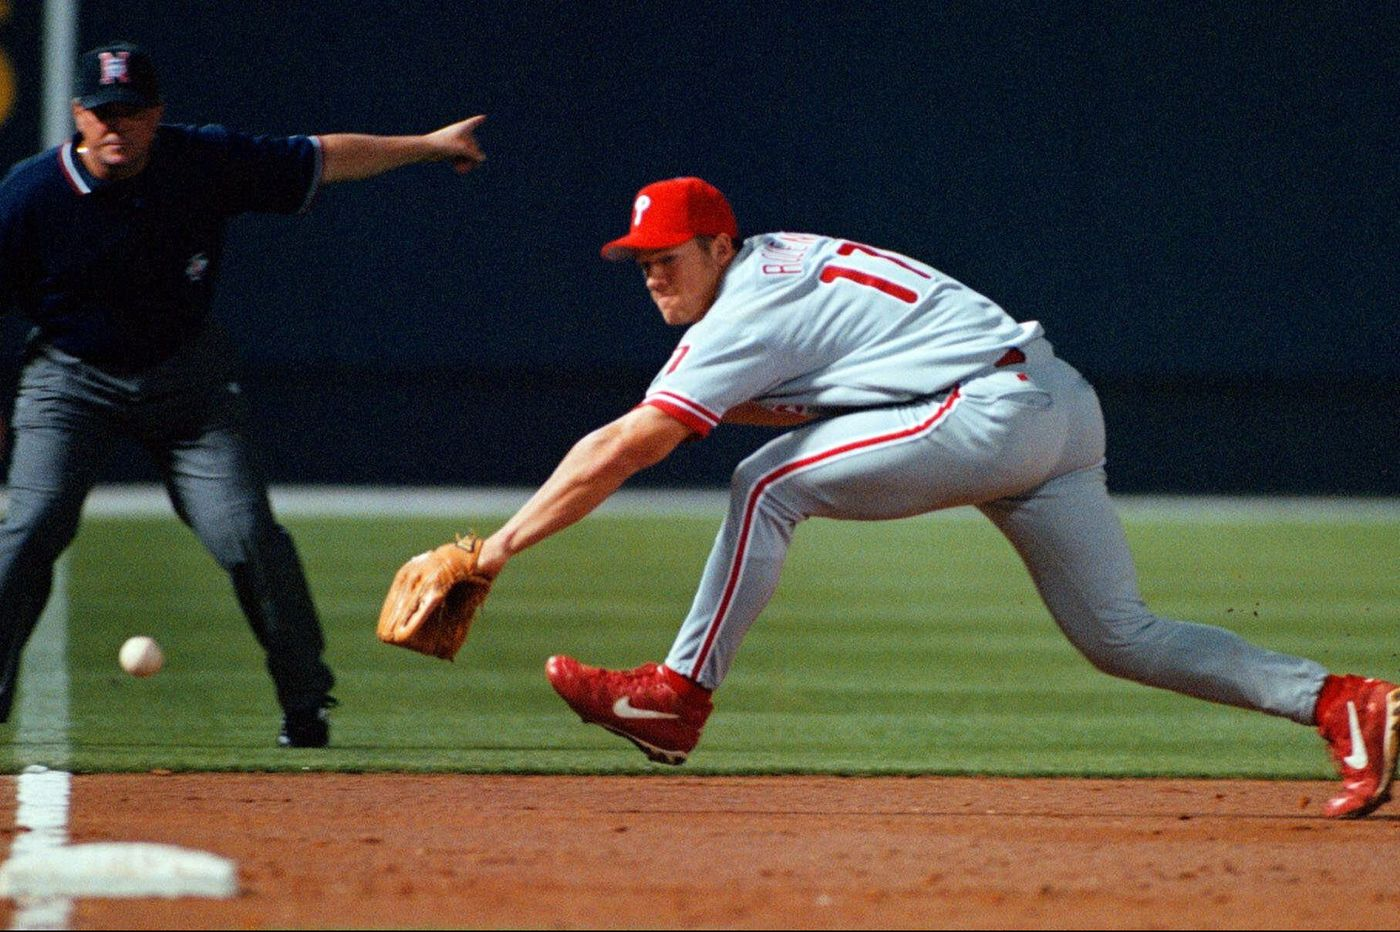 OTD: Scott Rolen Rookie of the Year